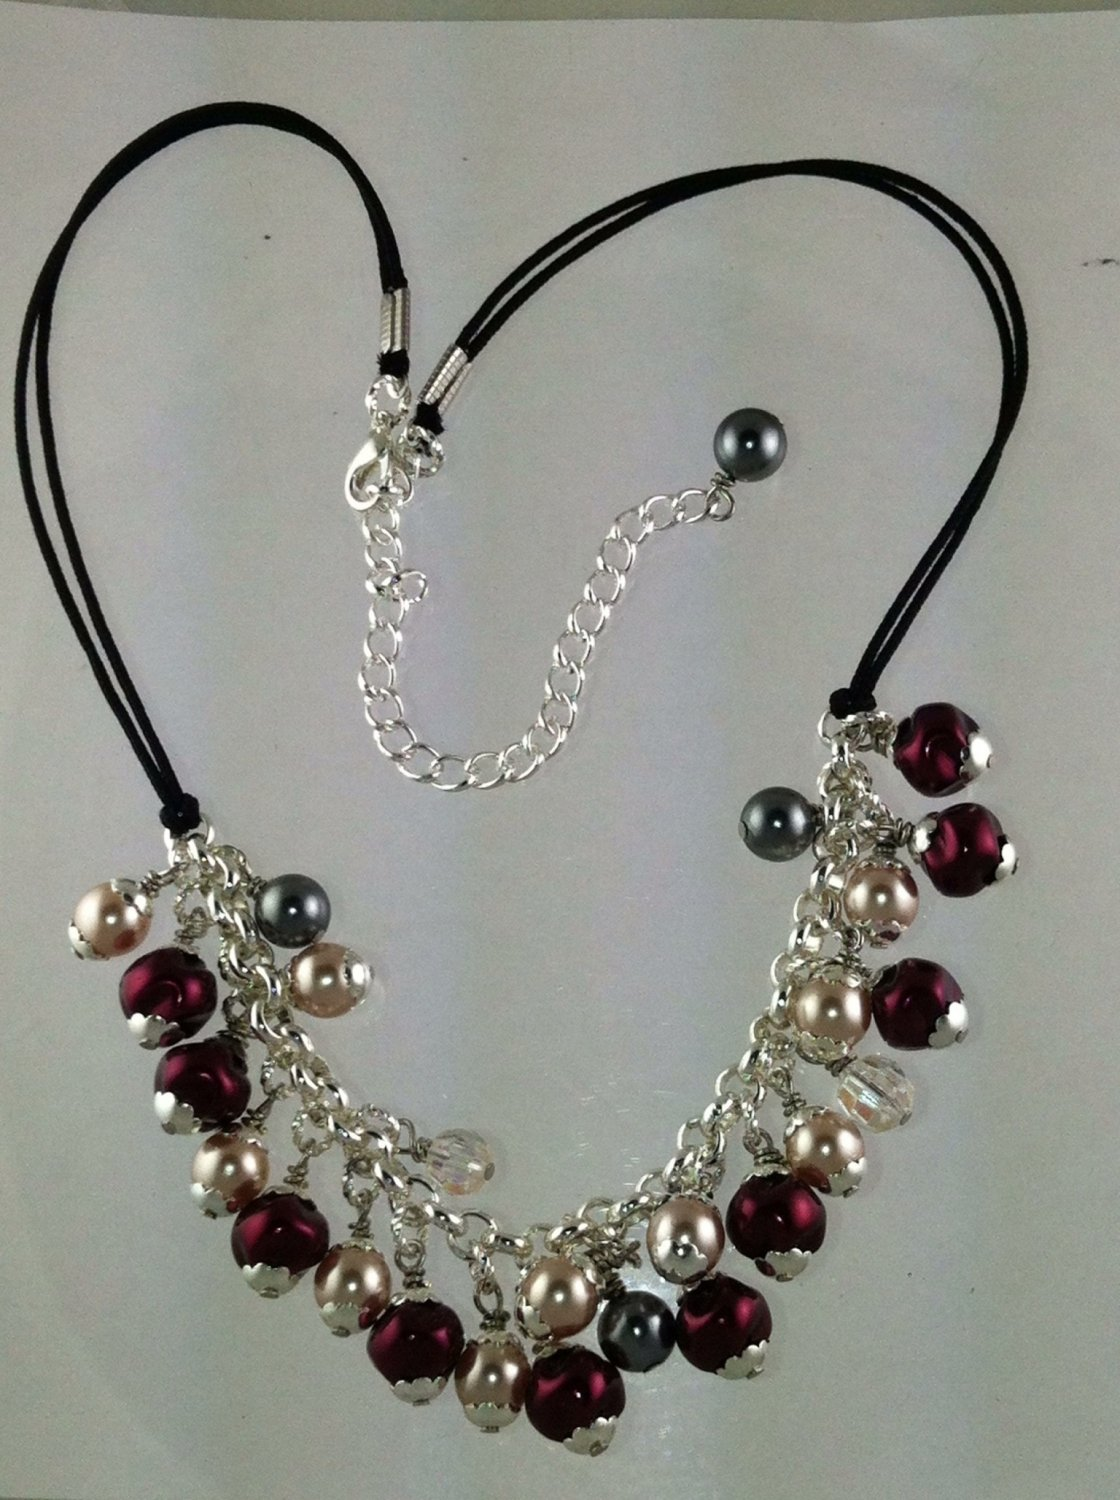 Silver with Burgandy, Cream, Dark Gray Glass Pearls Necklace